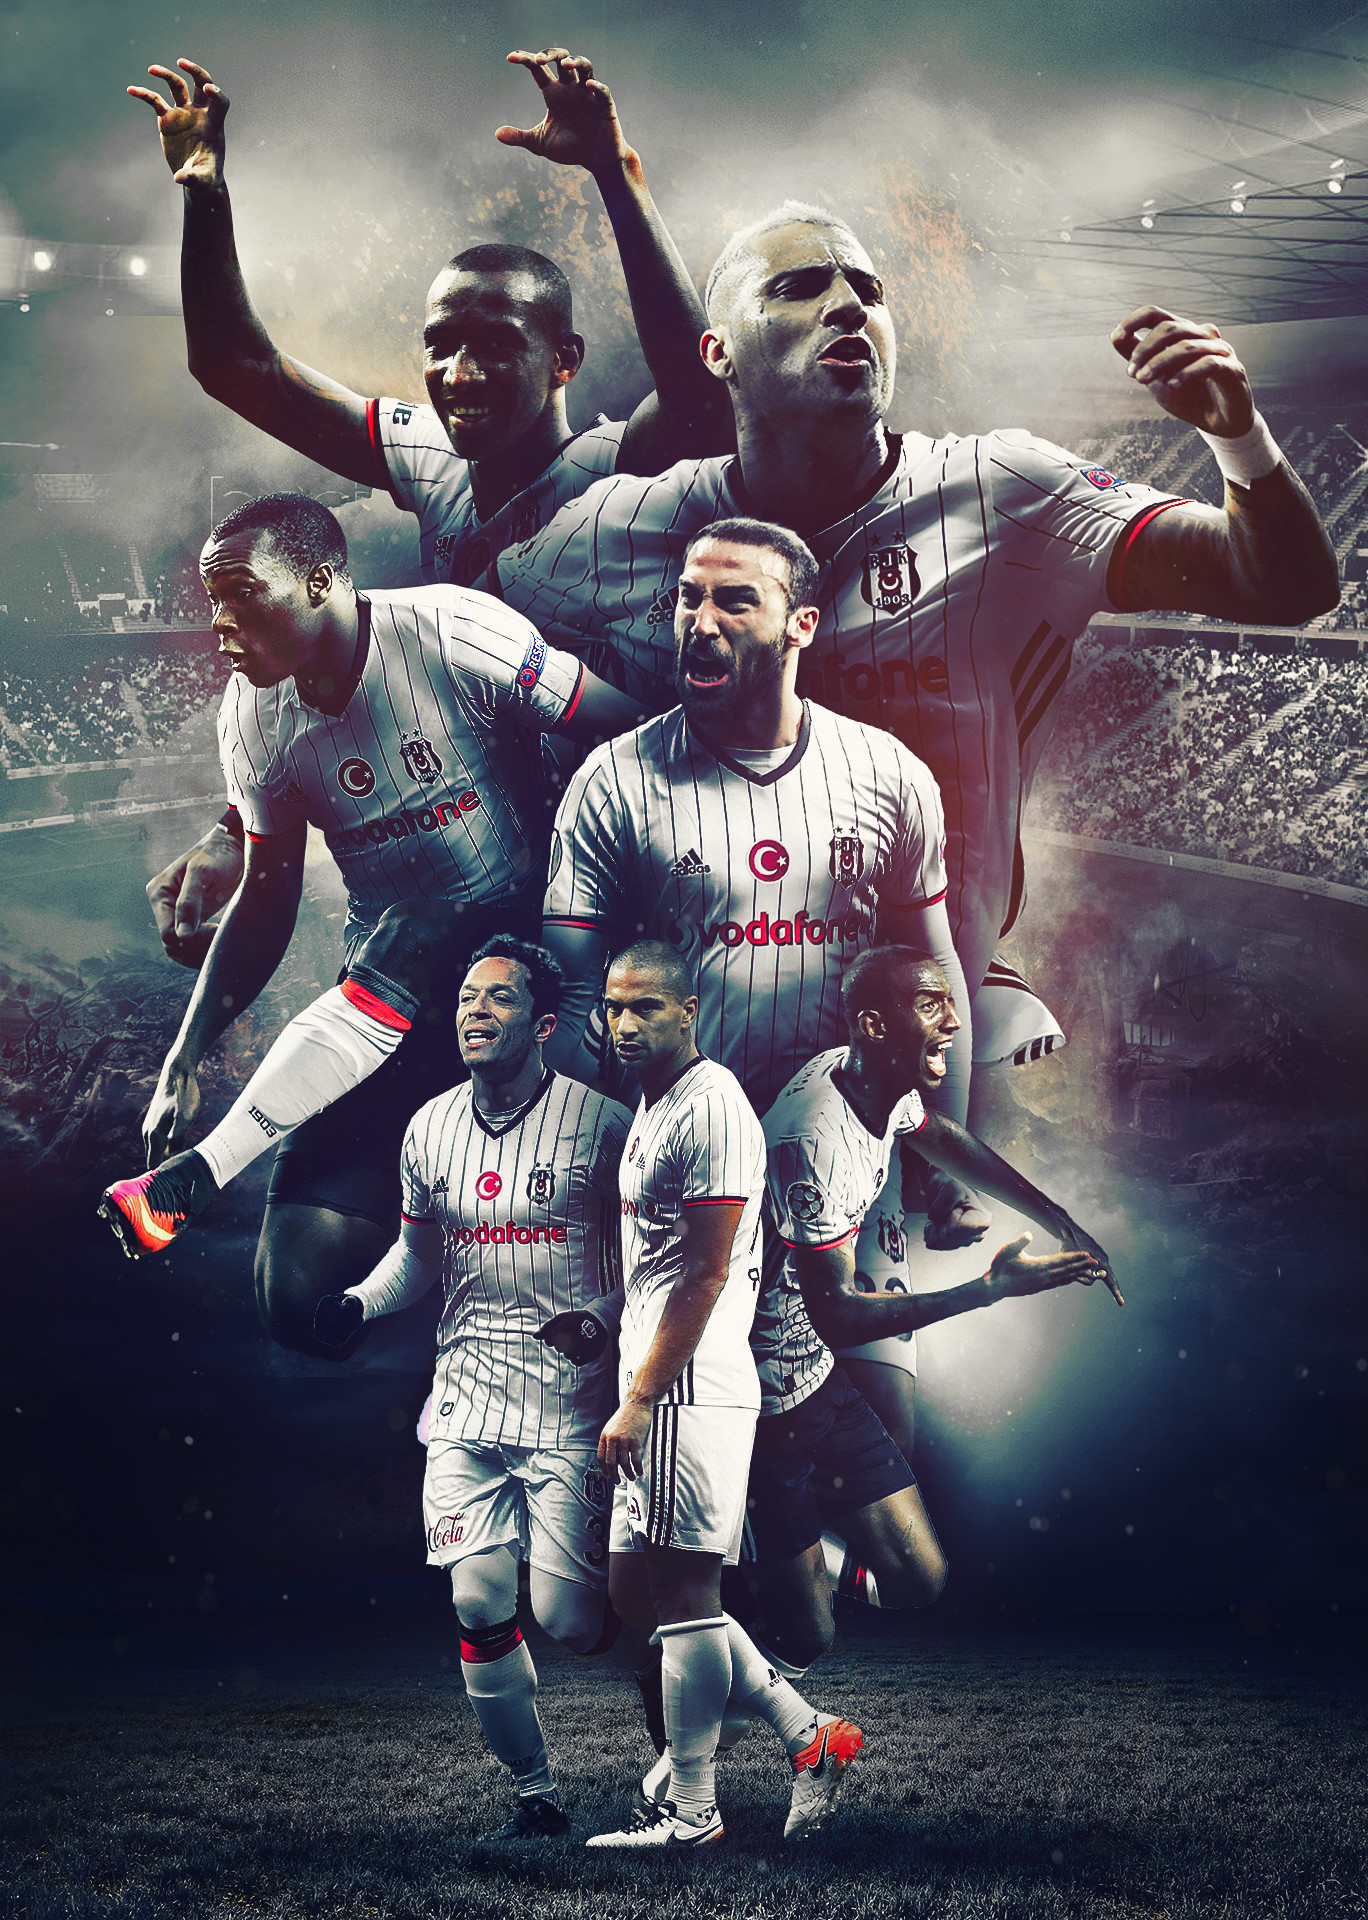 Besiktas Wallpapers 76 images 1368x1920